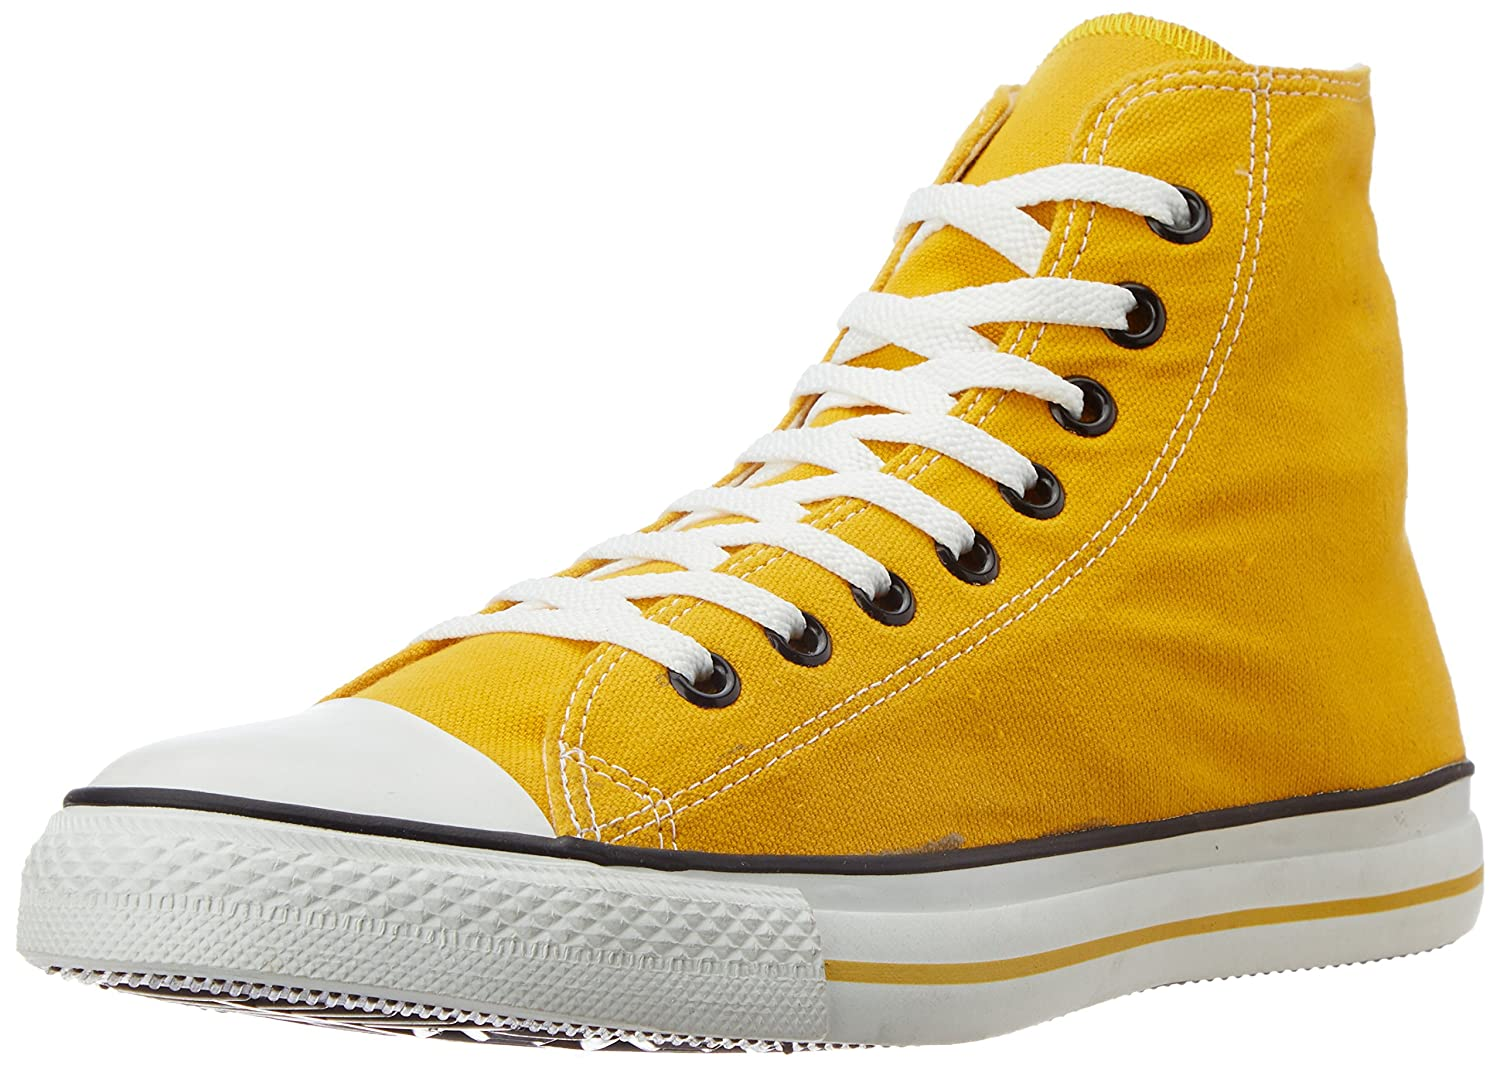 Converse Unisex Yellow Canvas Sneakers